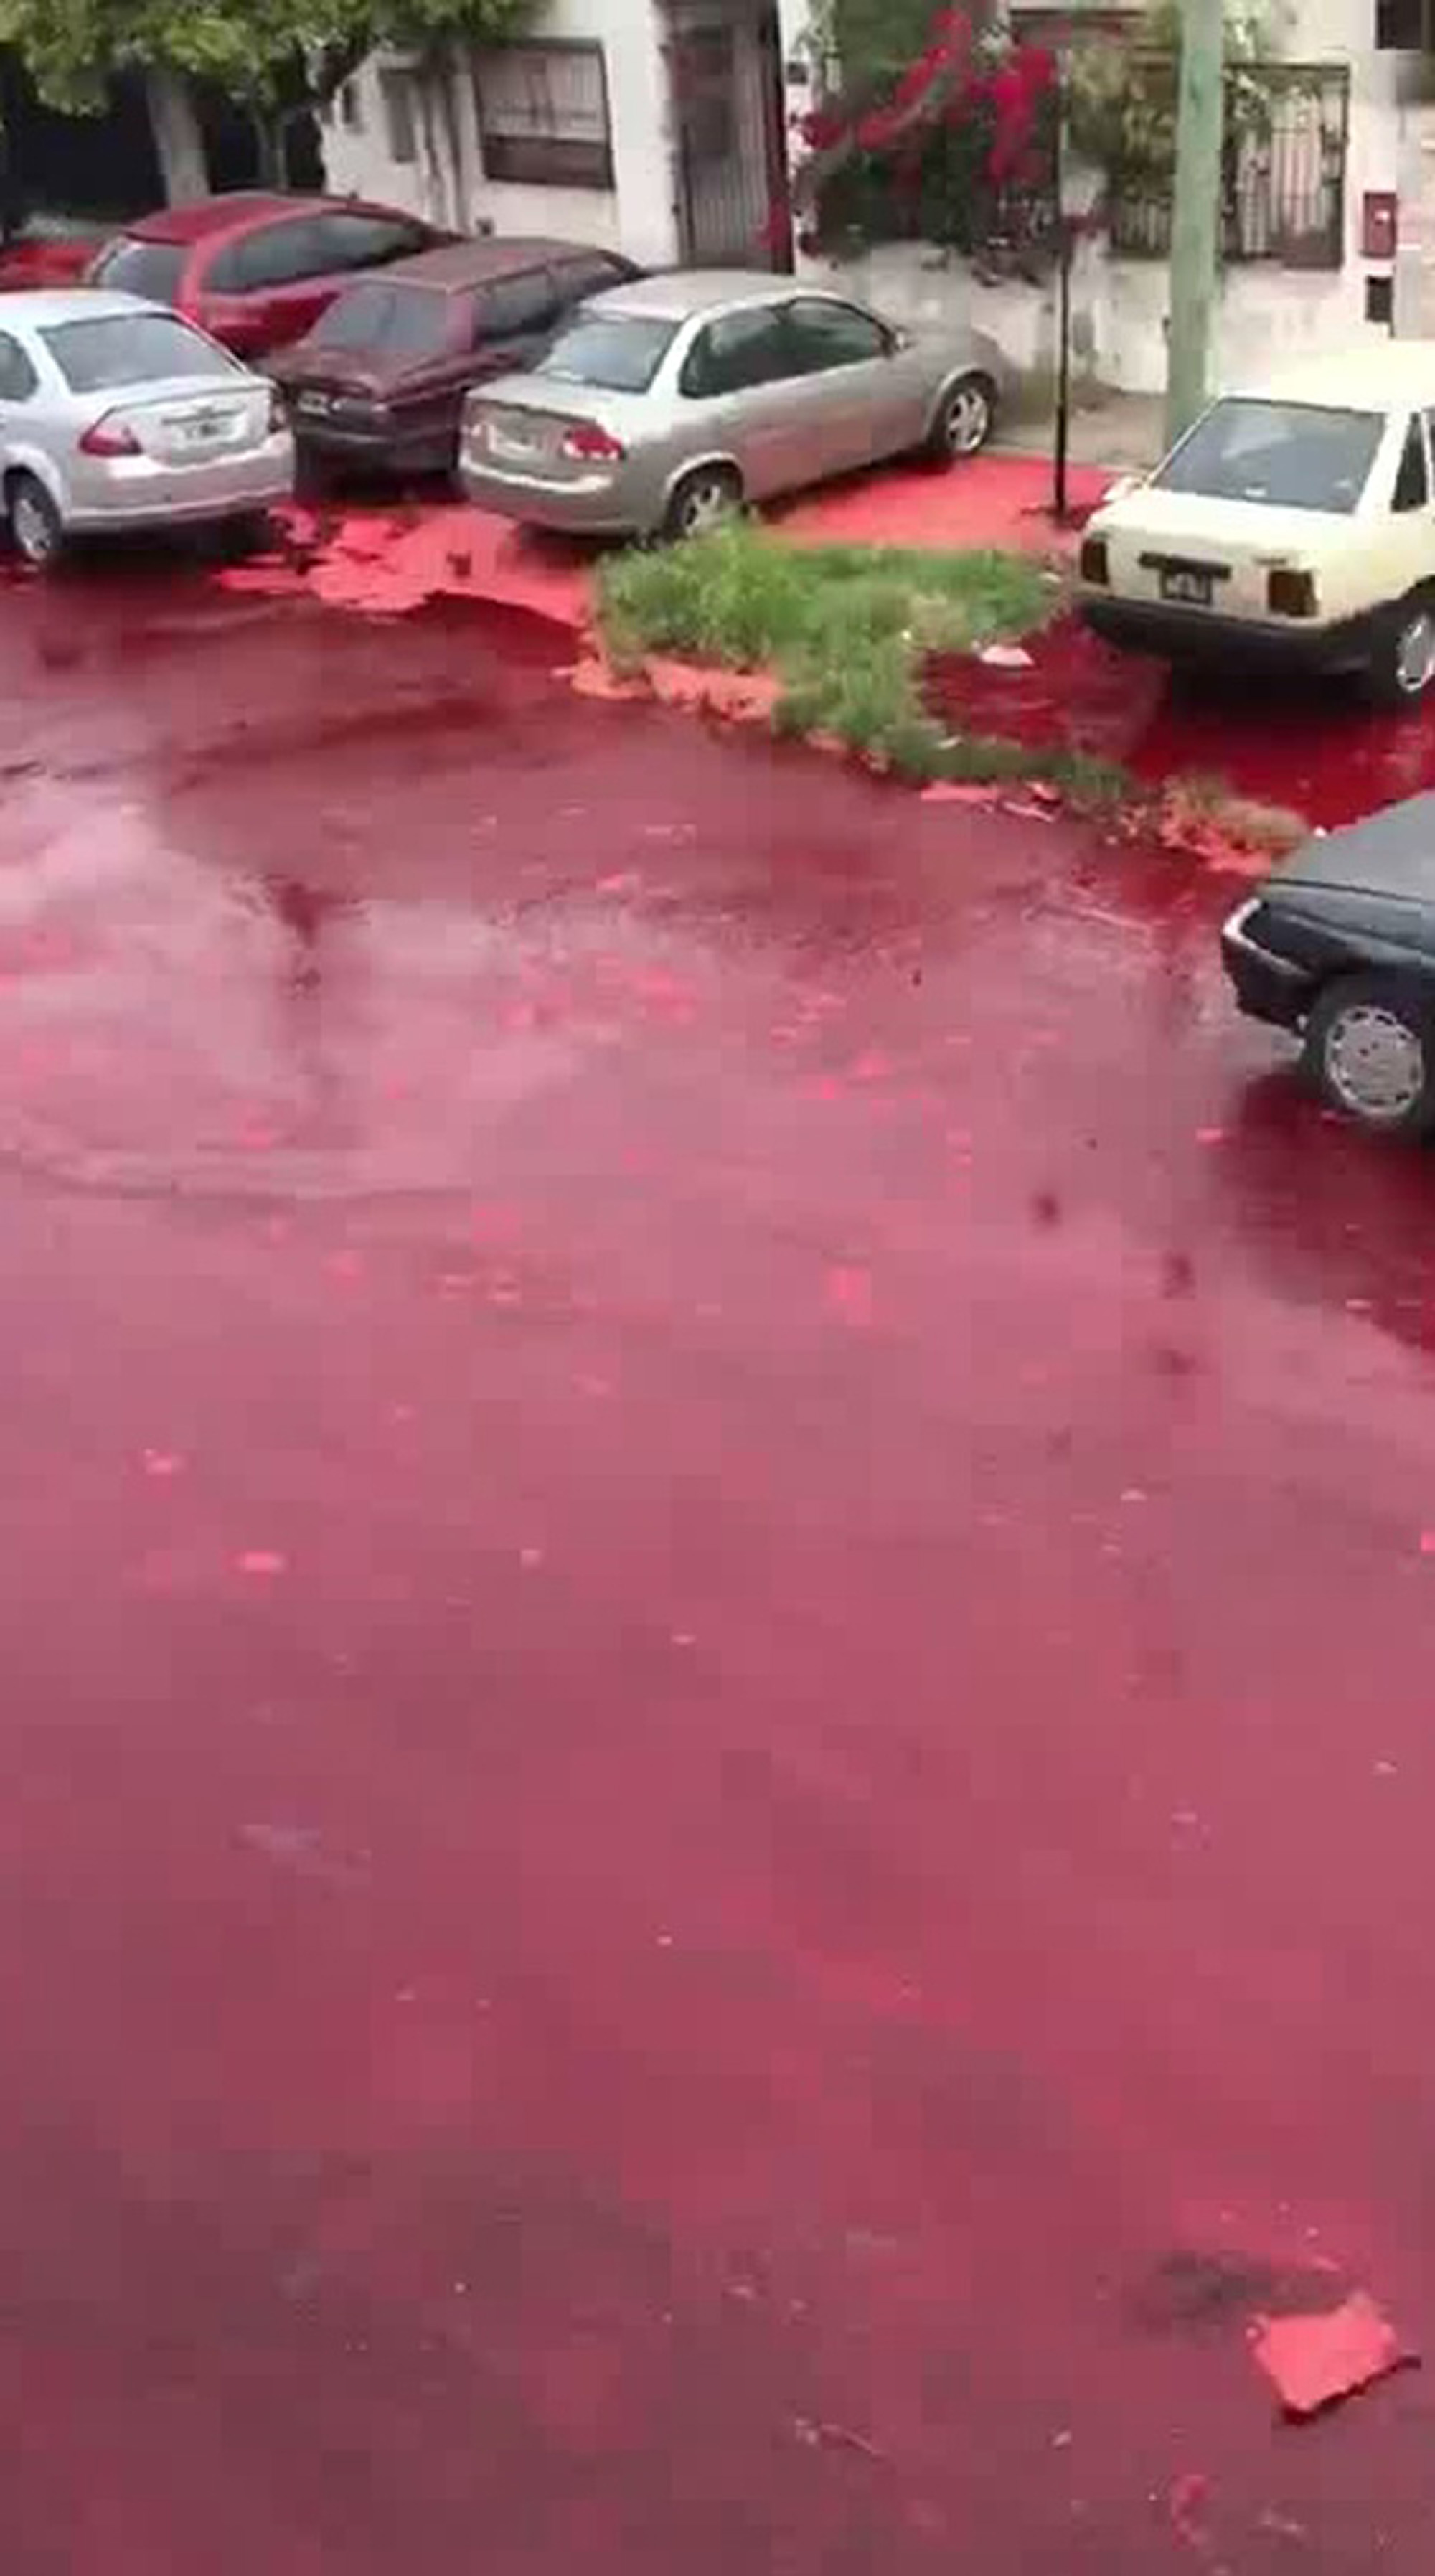 Streets covered in blood after slaughterhouse incident